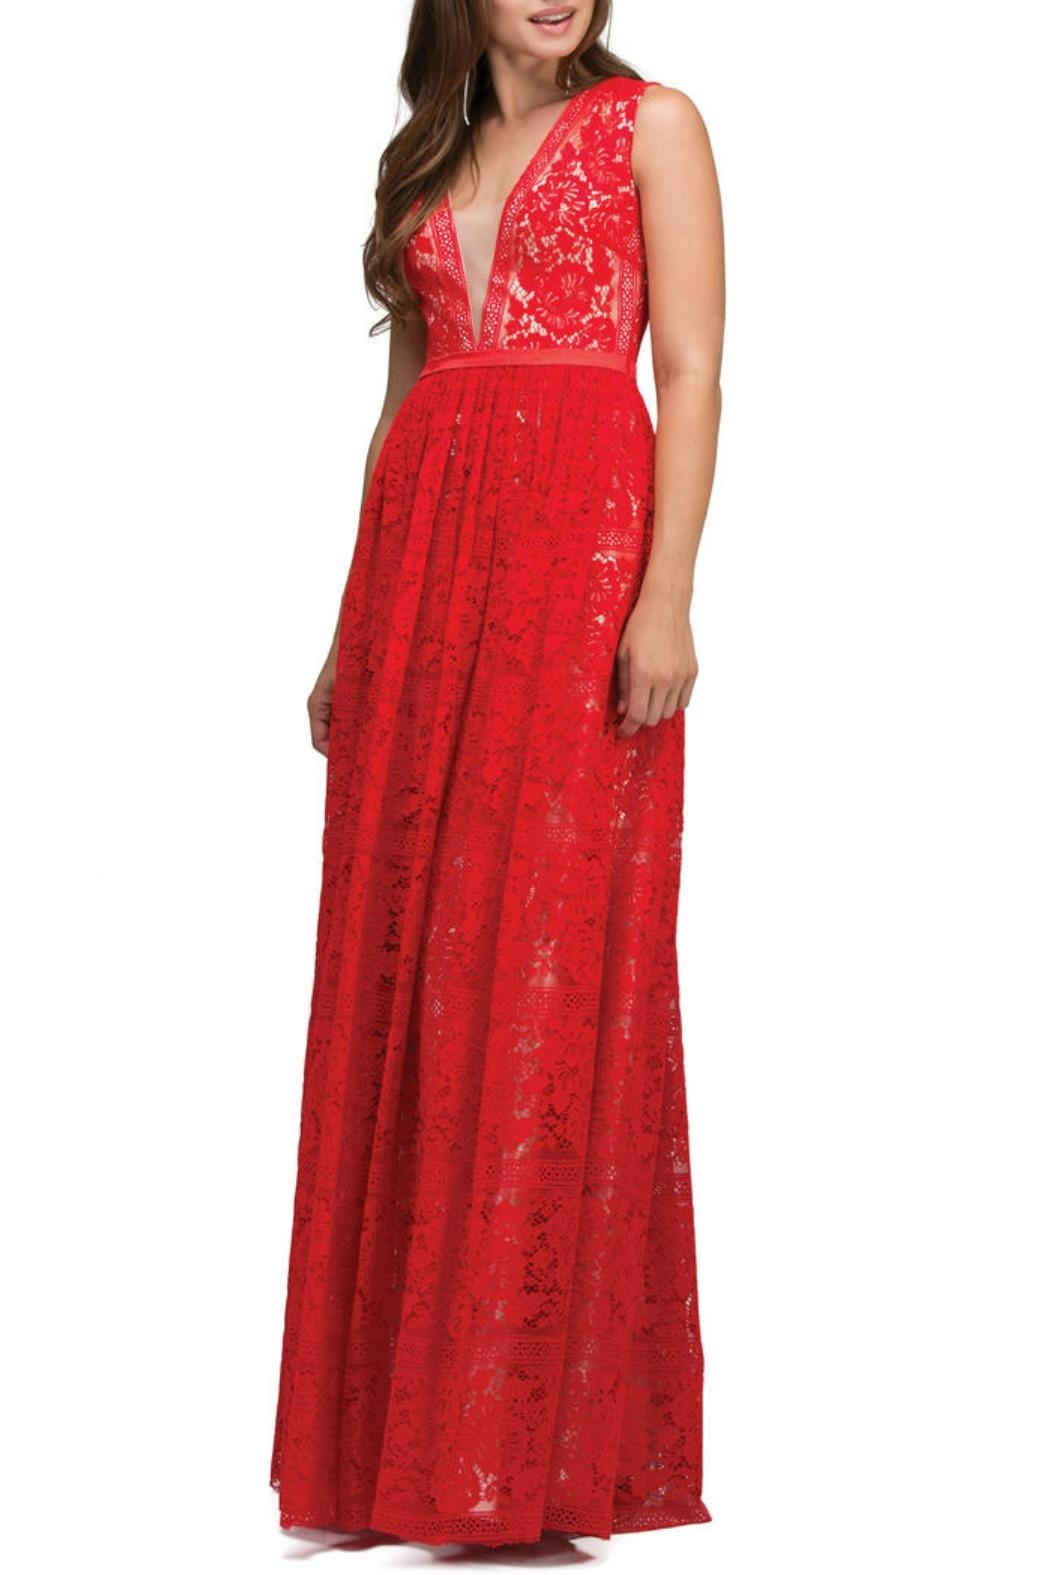 Lucci Lu Lace Empire Gown - Main Image